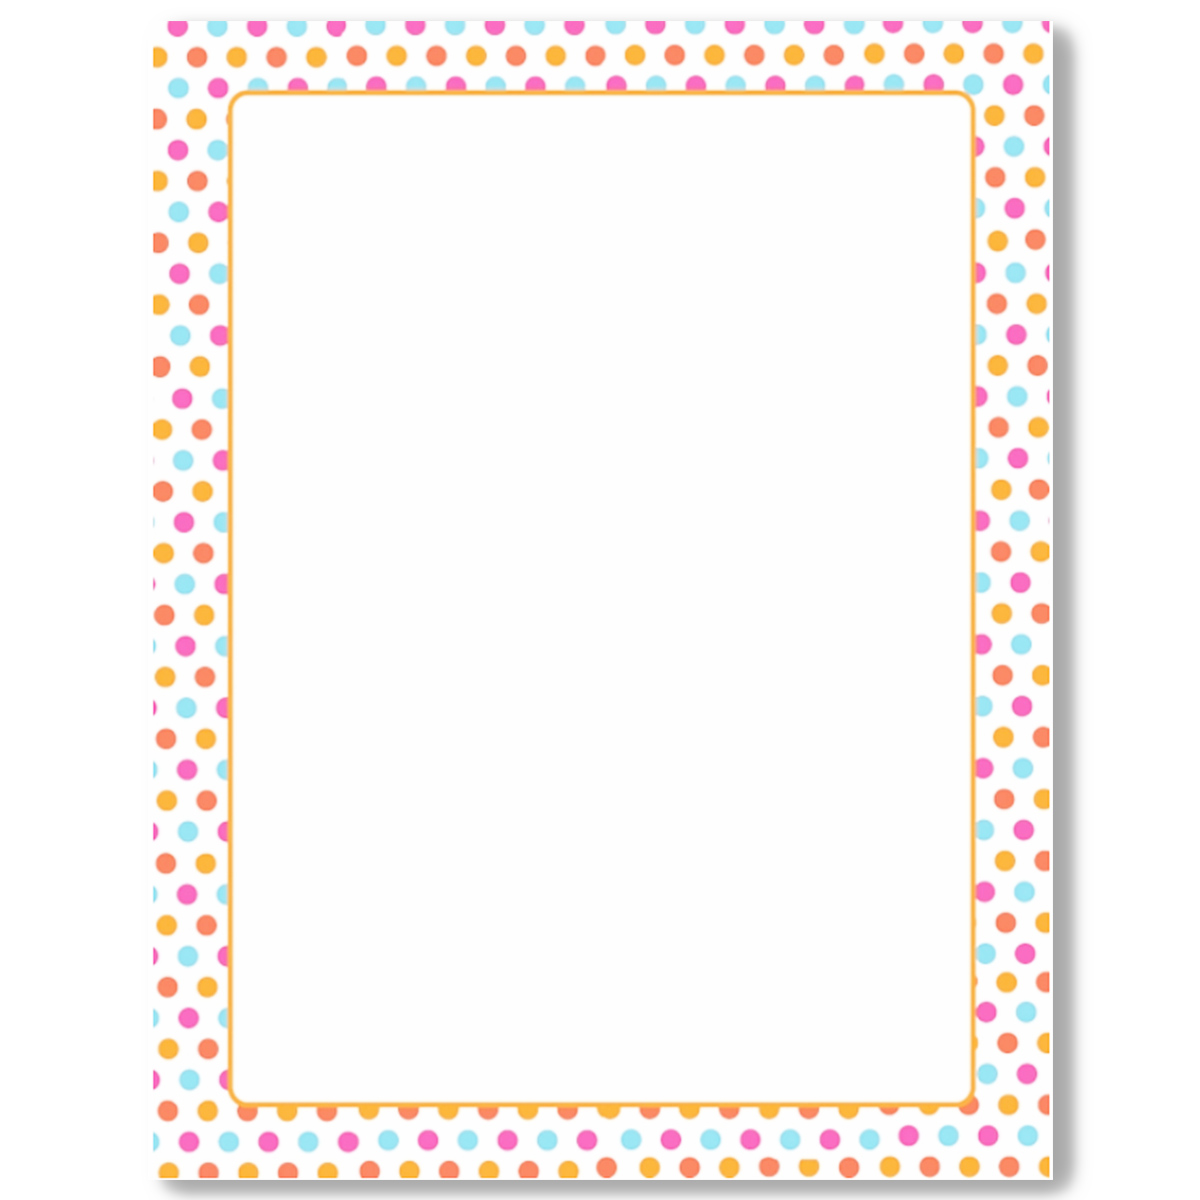 photograph about Printable Paper With Border referred to as Multi Dots with Orange Border Letterhead - 25 Depend [Geo48718] : Designer Papers attractive printer paper Printable Paper Xmas stationery